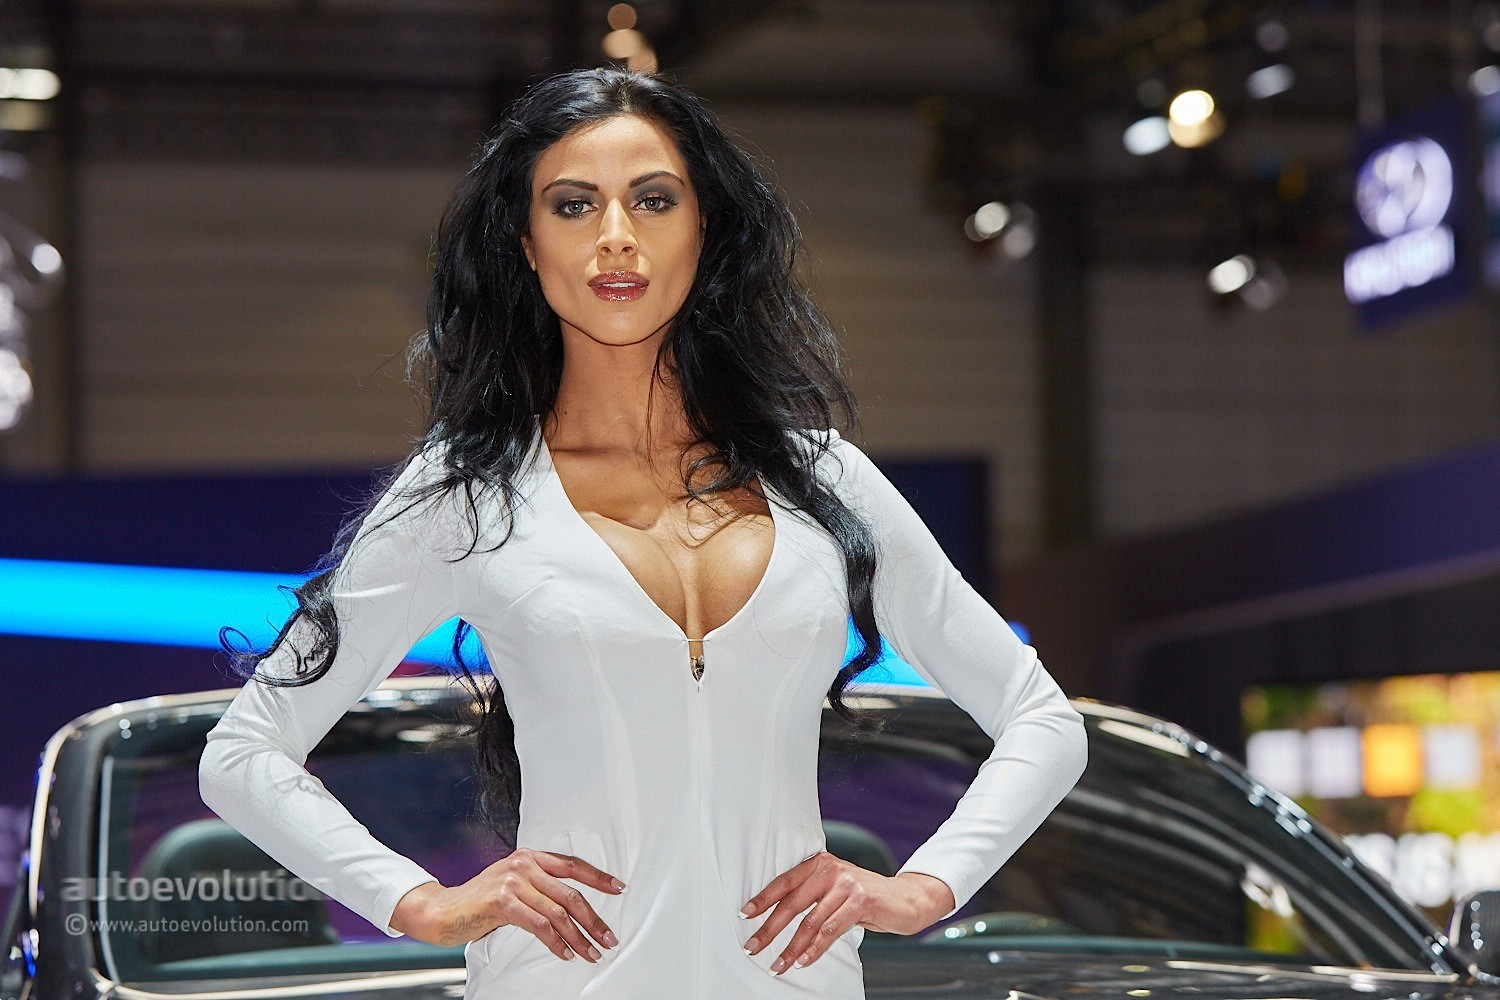 Hot girls at the geneva motor show 2015 autoevolution for Living with models